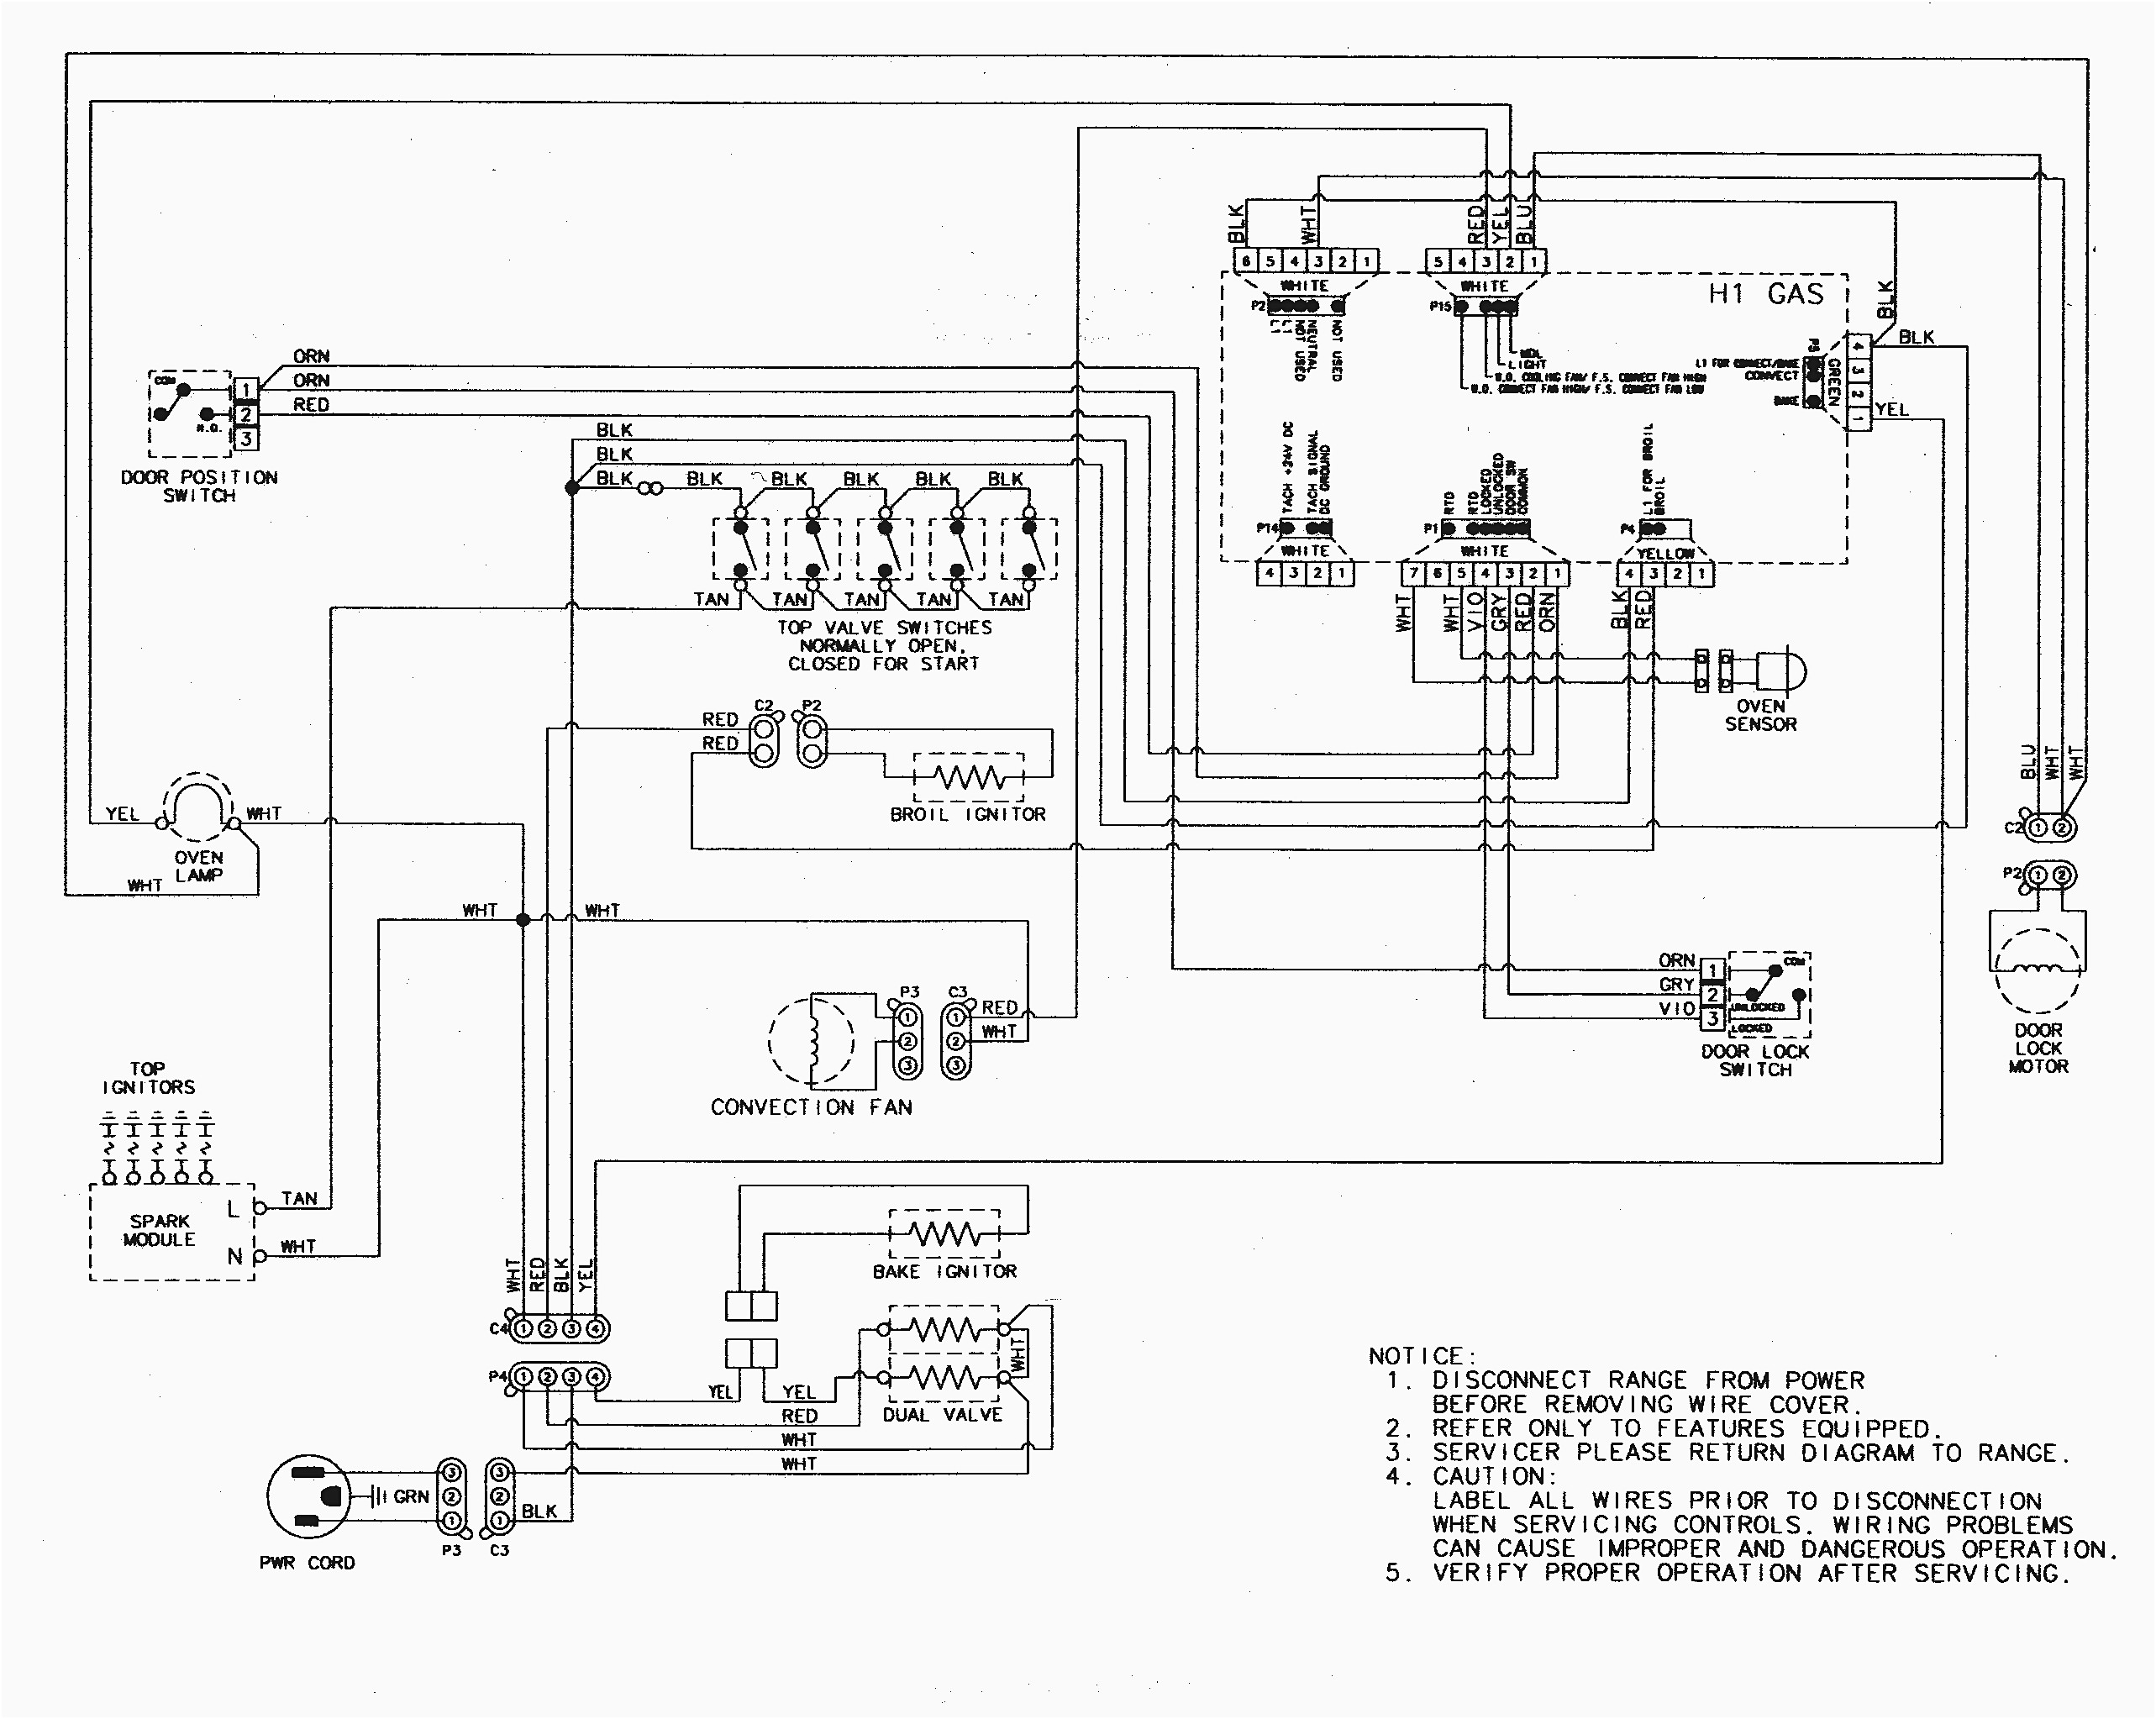 Ge Dishwasher Diagram - Wiring Diagrams List on